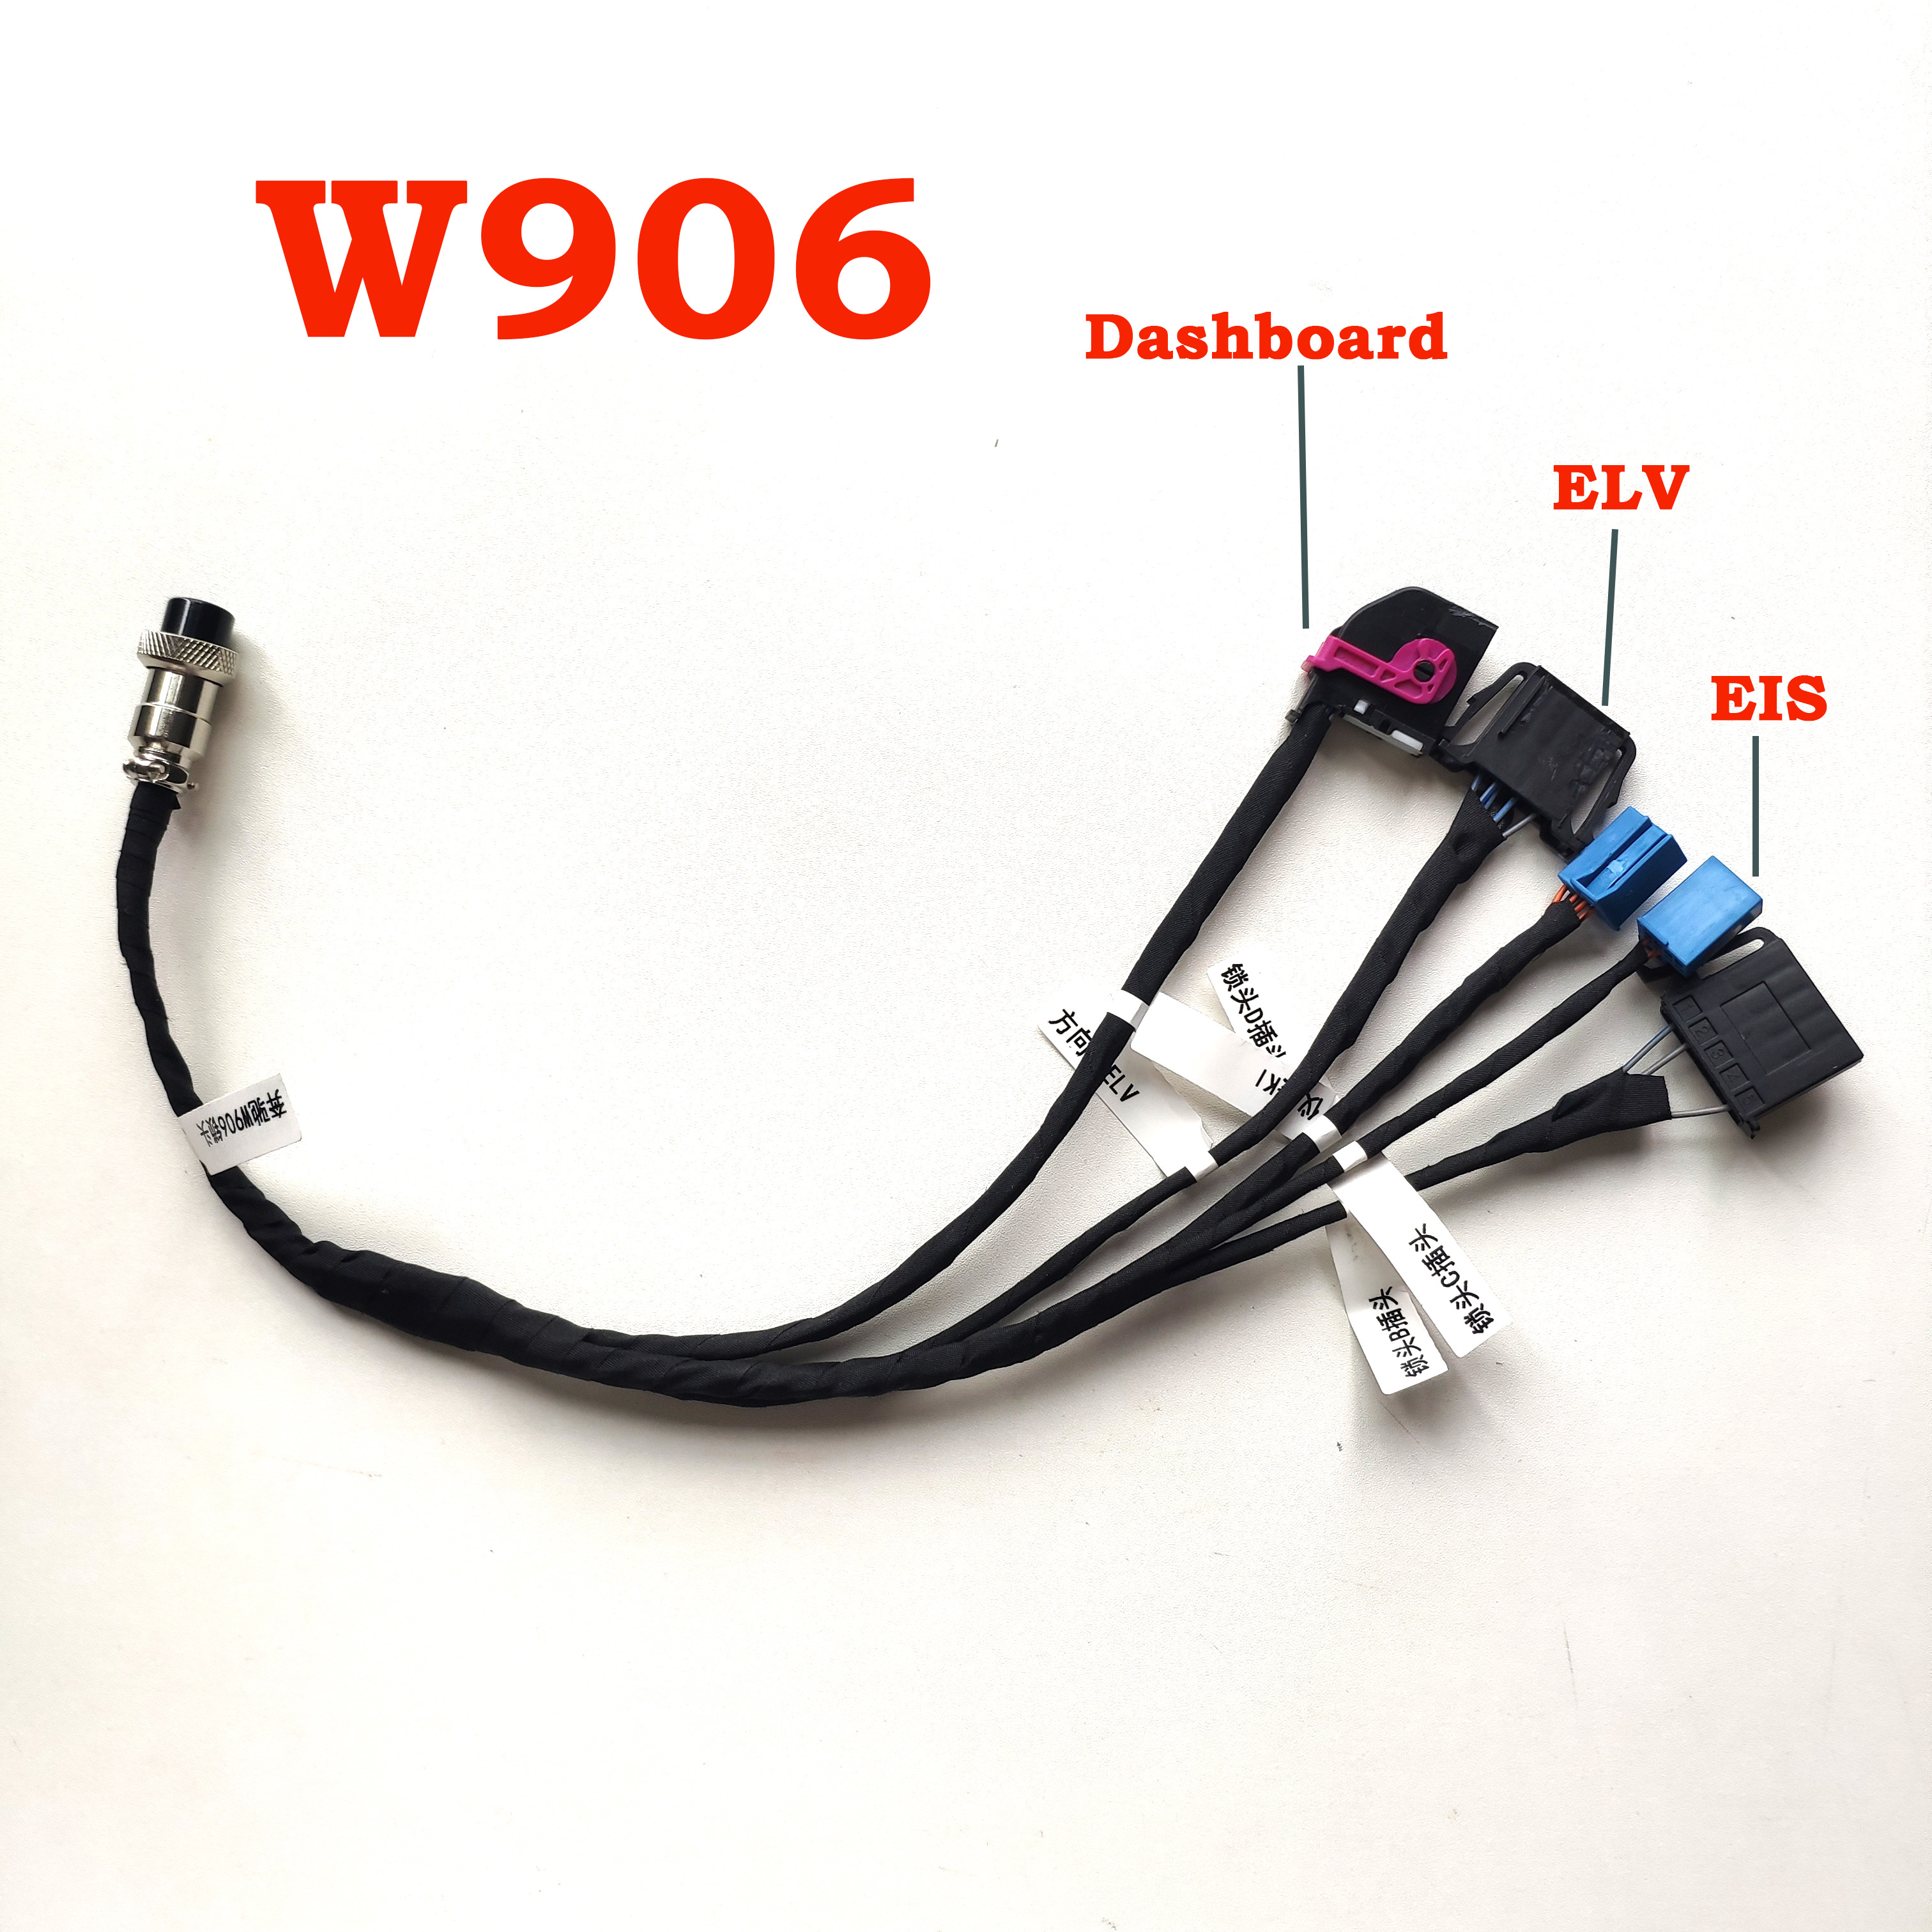 W906 Gearbox TCM 7-G Cable Option Adapter Cables for ELV EIS EZS Dashboard Test Platform